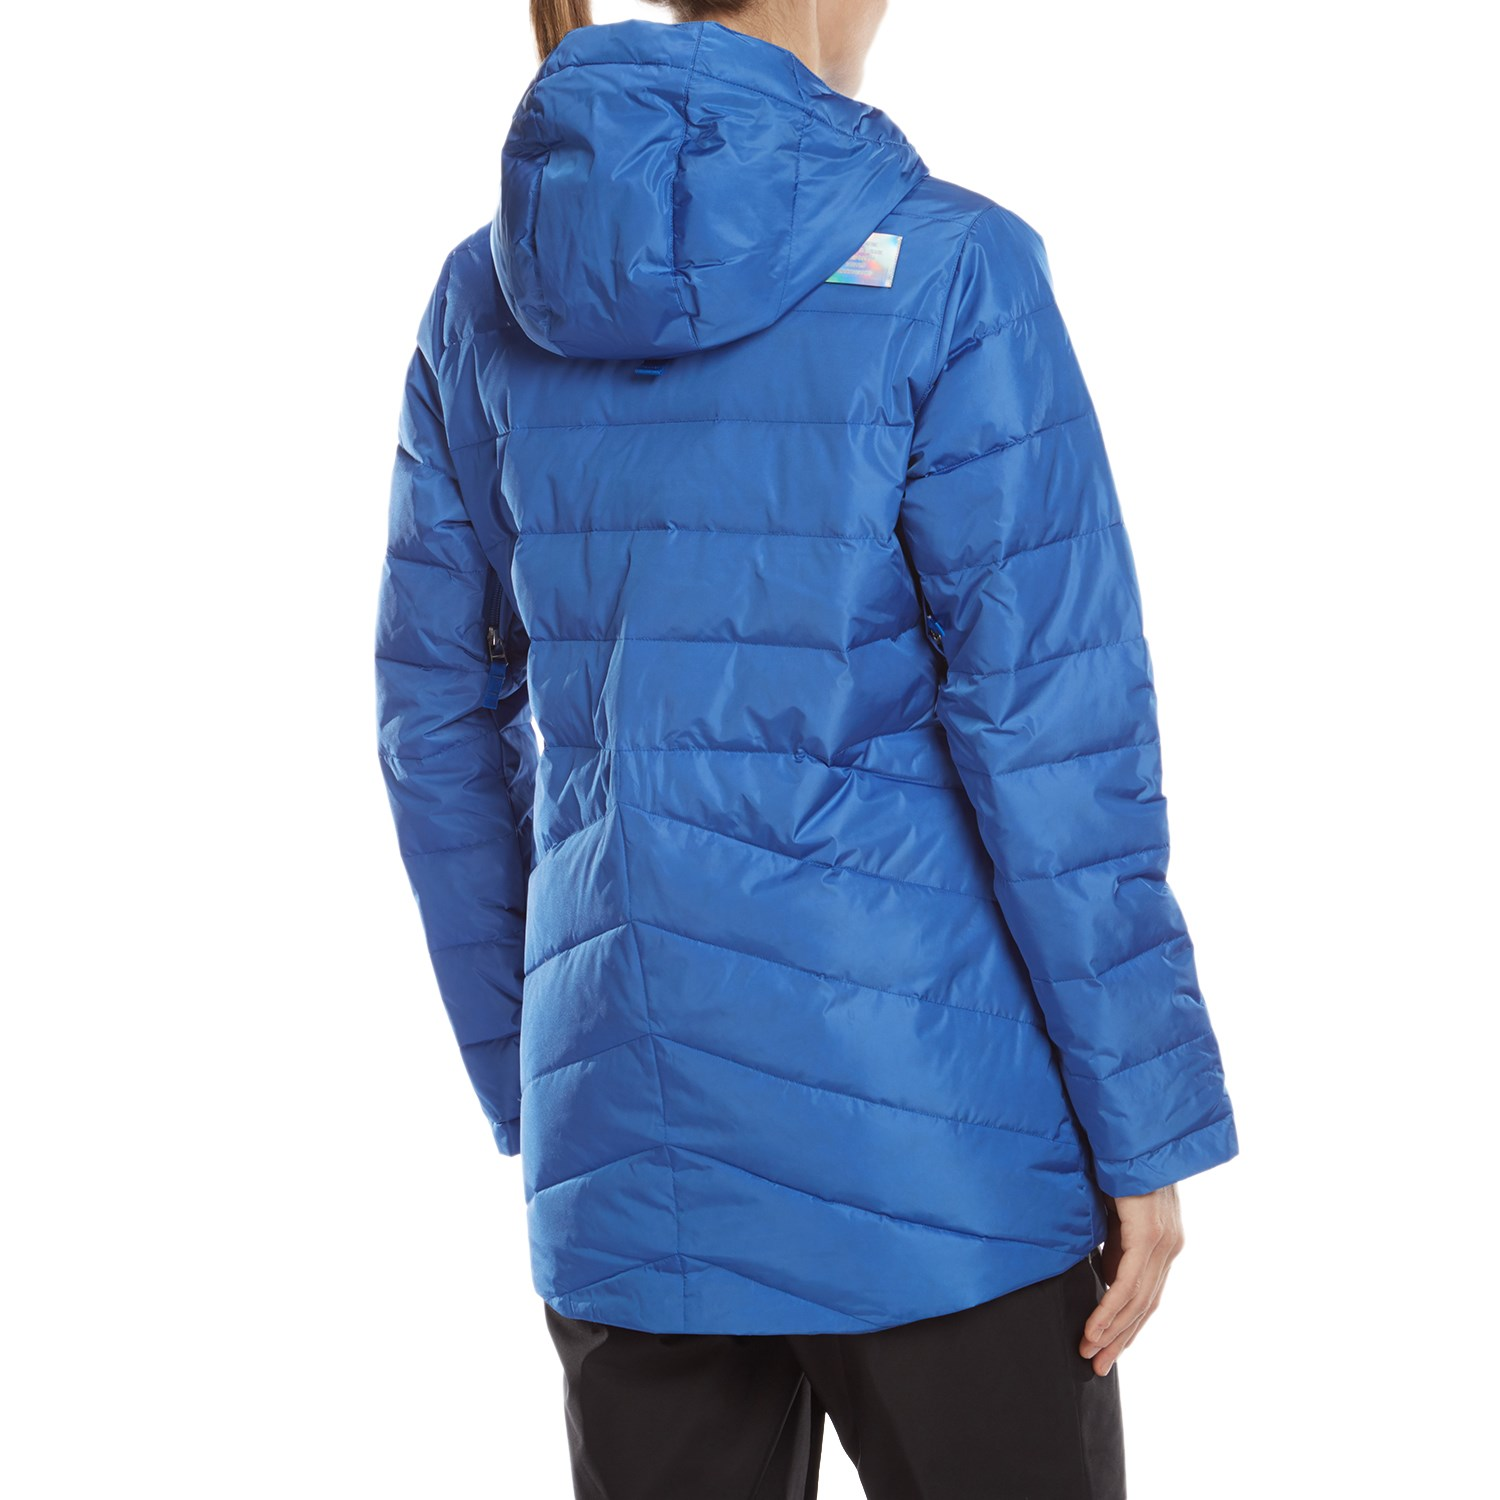 Sphinx Down Jacket scuba Burton HiSMoA